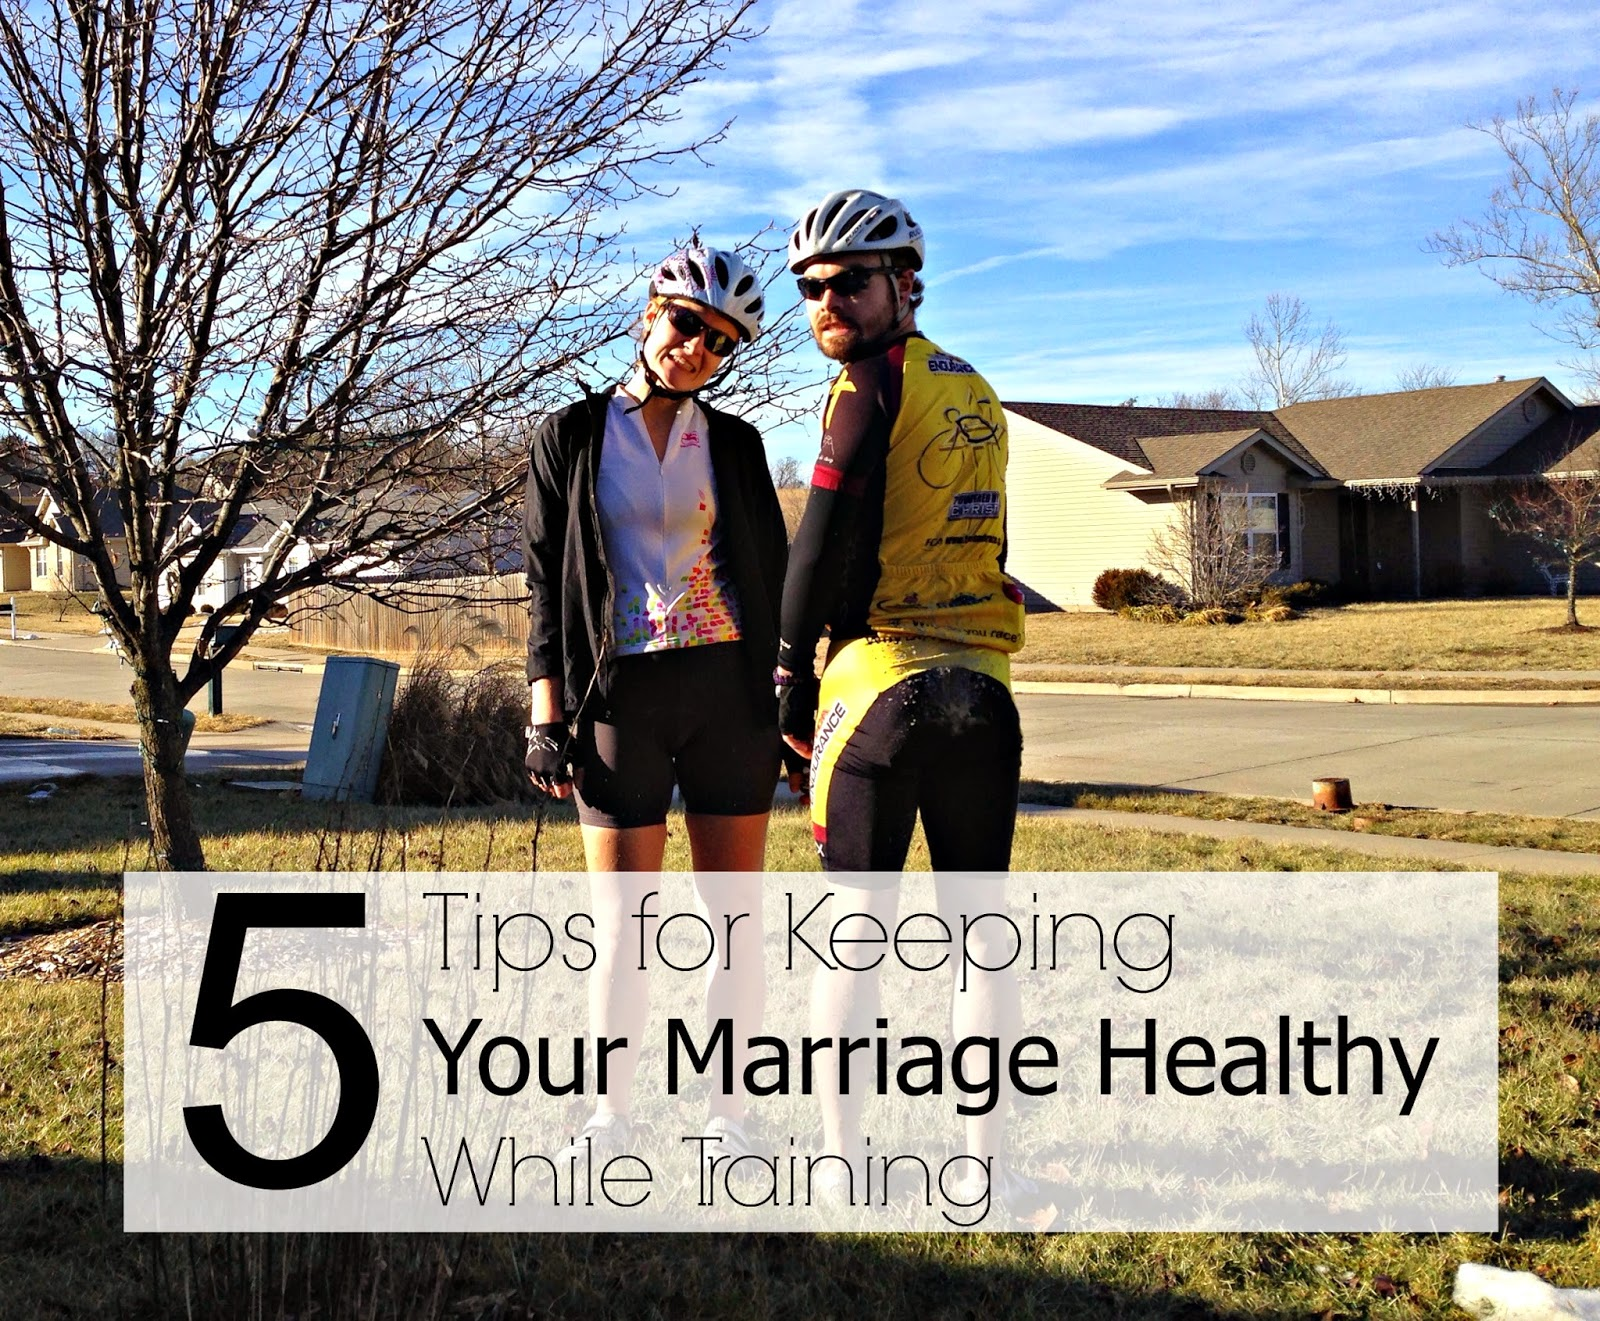 Keeping your marriage healthy while training